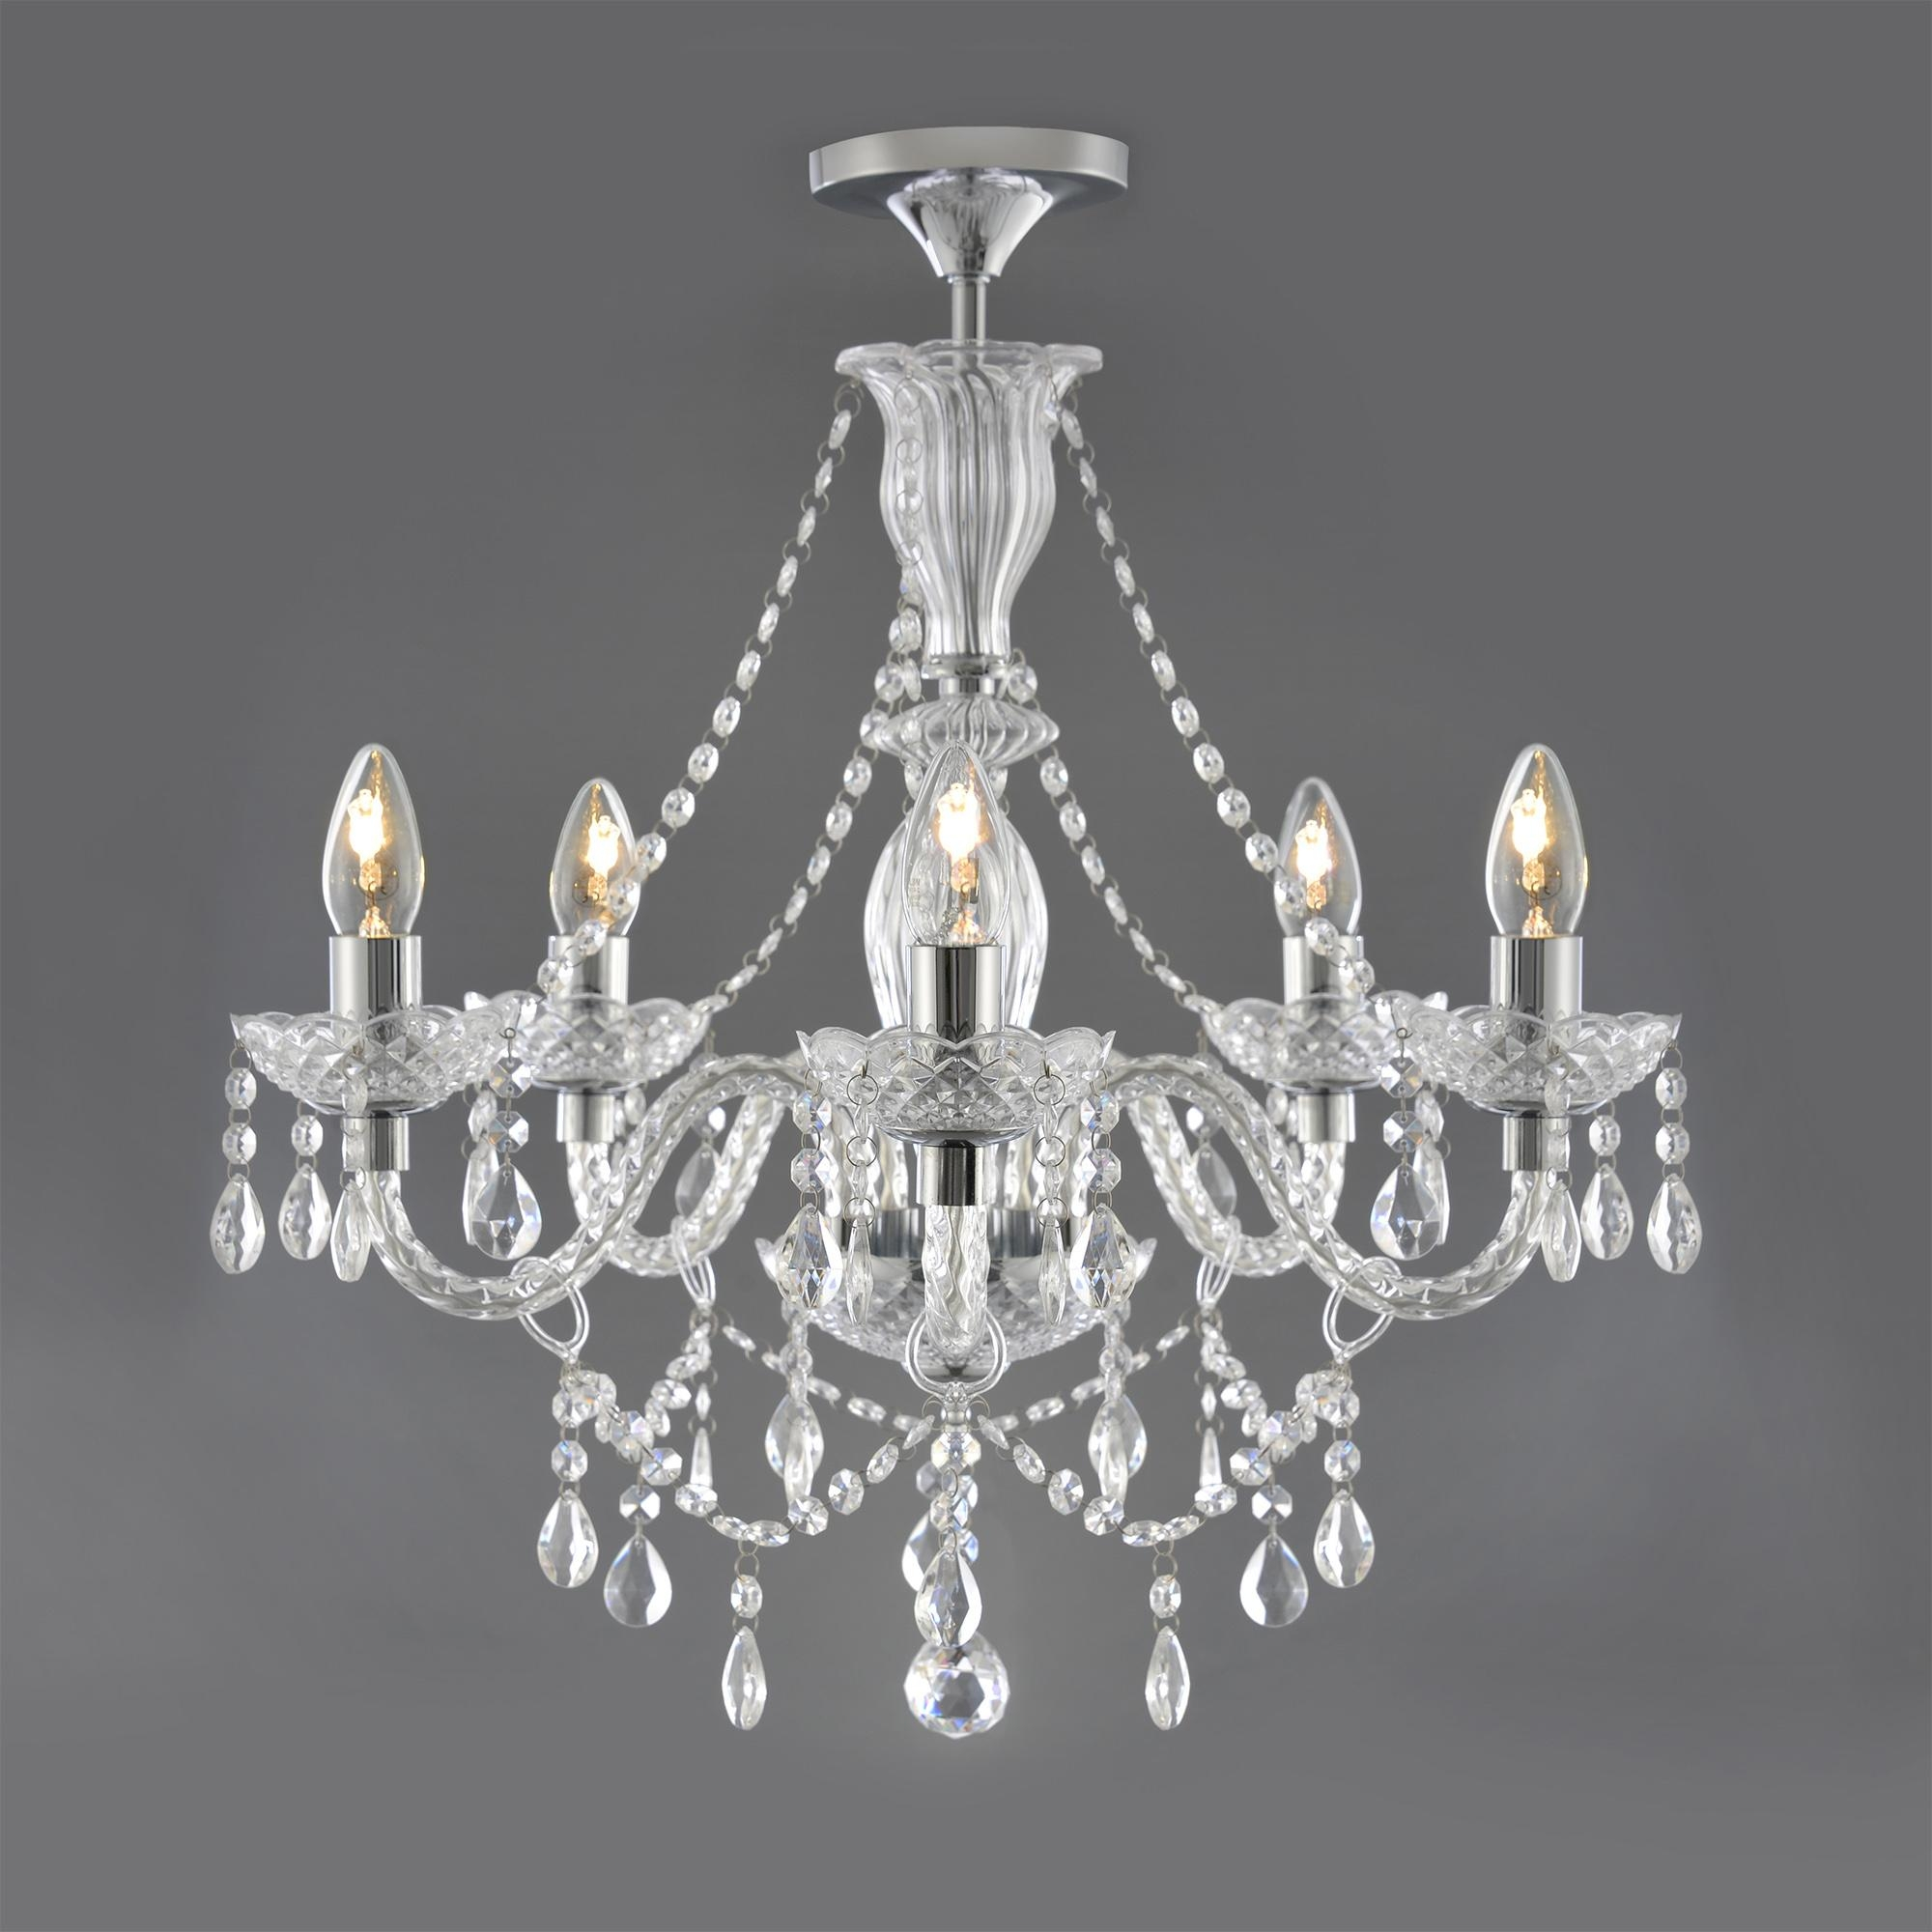 15 Photos Small Chandeliers for Low Ceilings  Chandelier